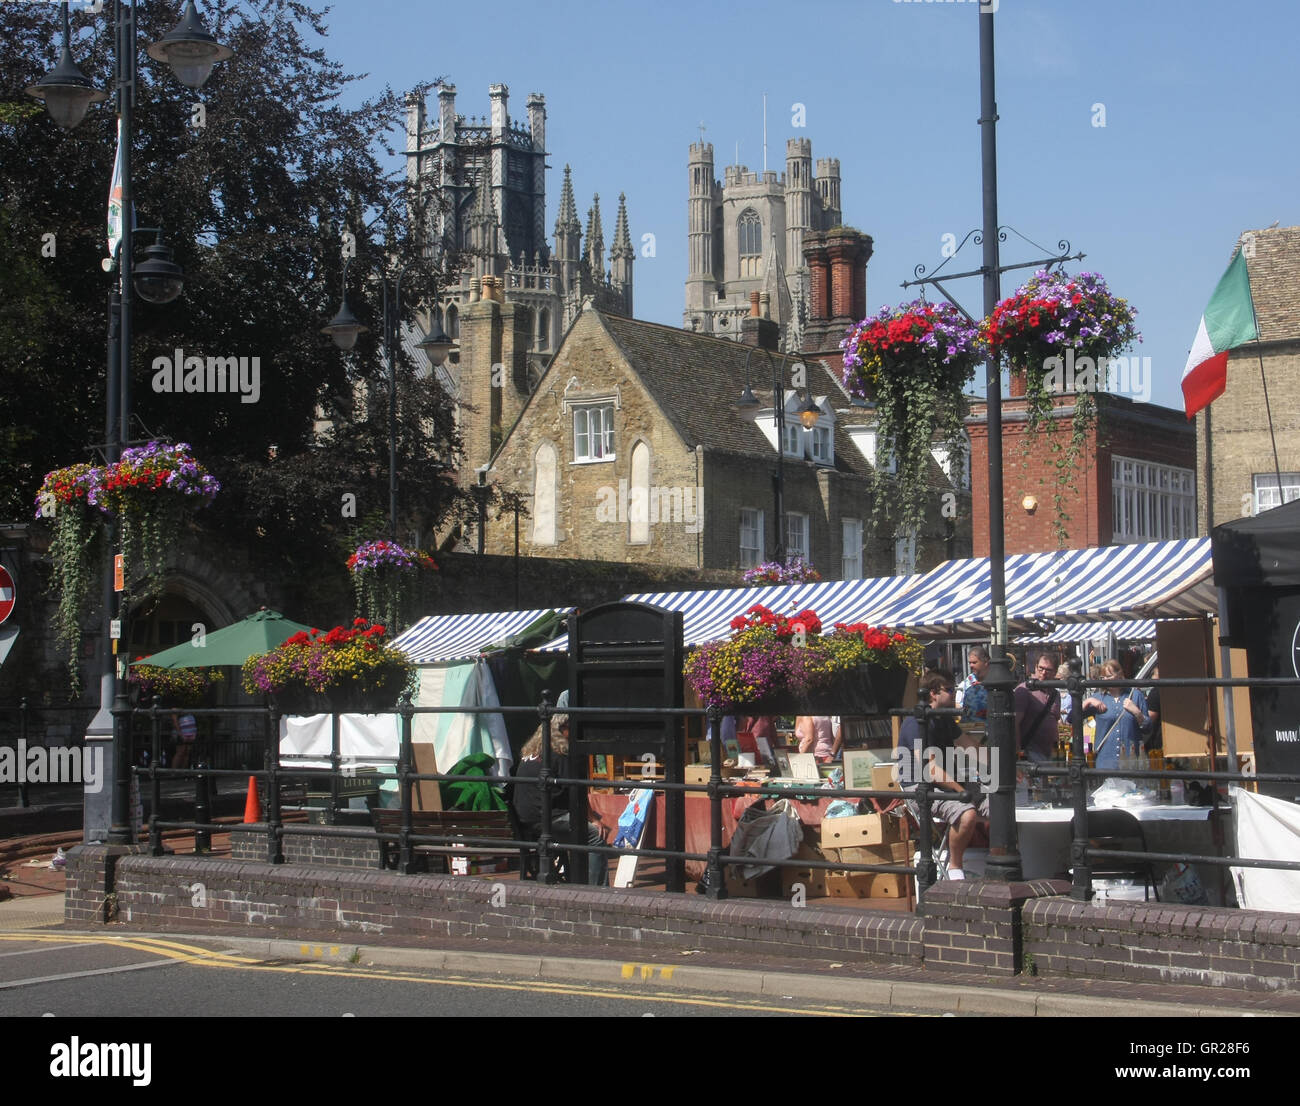 Market near Ely Cathedral - Stock Image